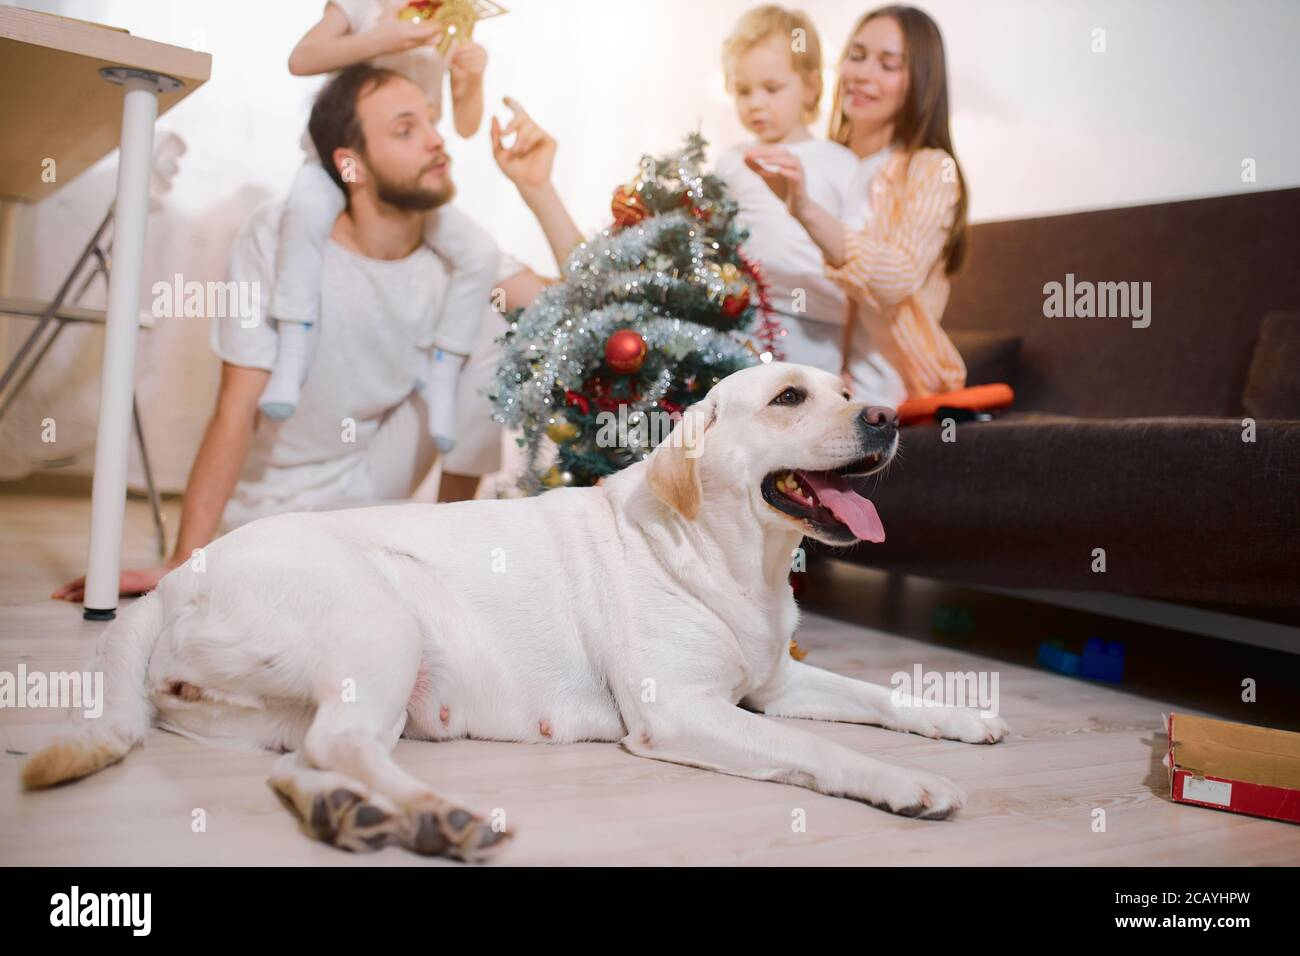 Is There Goingvto Be A Christmas Tree 2020 excited parents and children decorating christmas tree together at